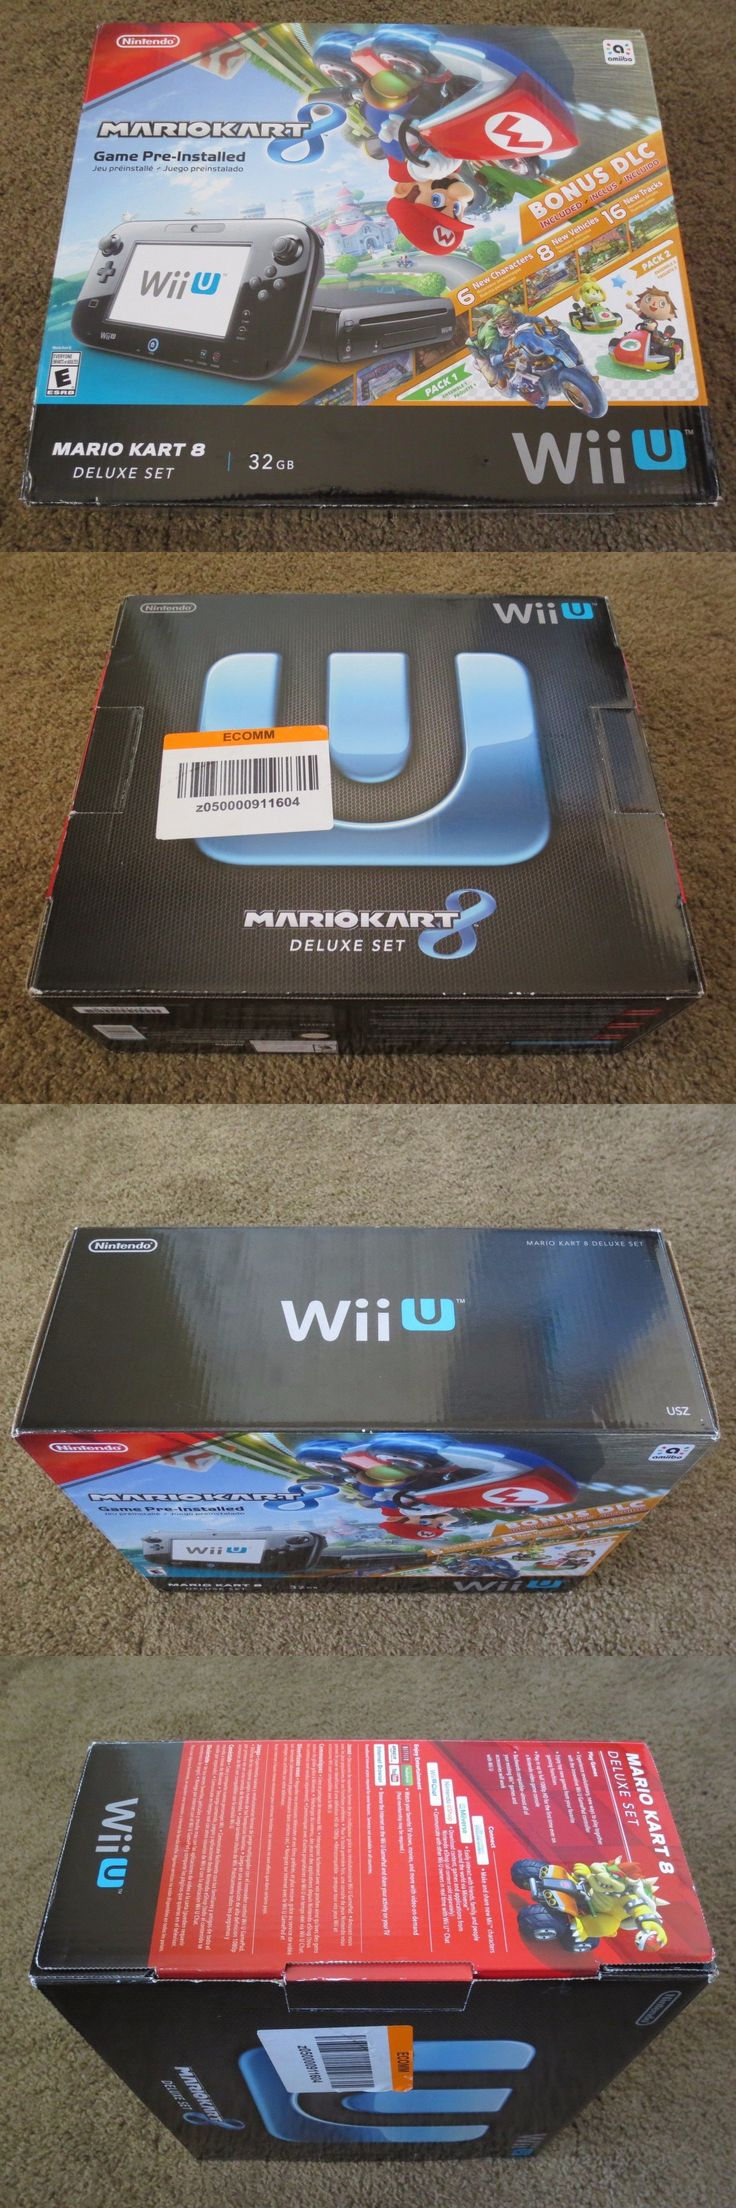 Video Gaming: New Nintendo Wii U Mario Kart 8 Pre-Installed Edition 32Gb Console System Black -> BUY IT NOW ONLY: $449.9 on eBay!